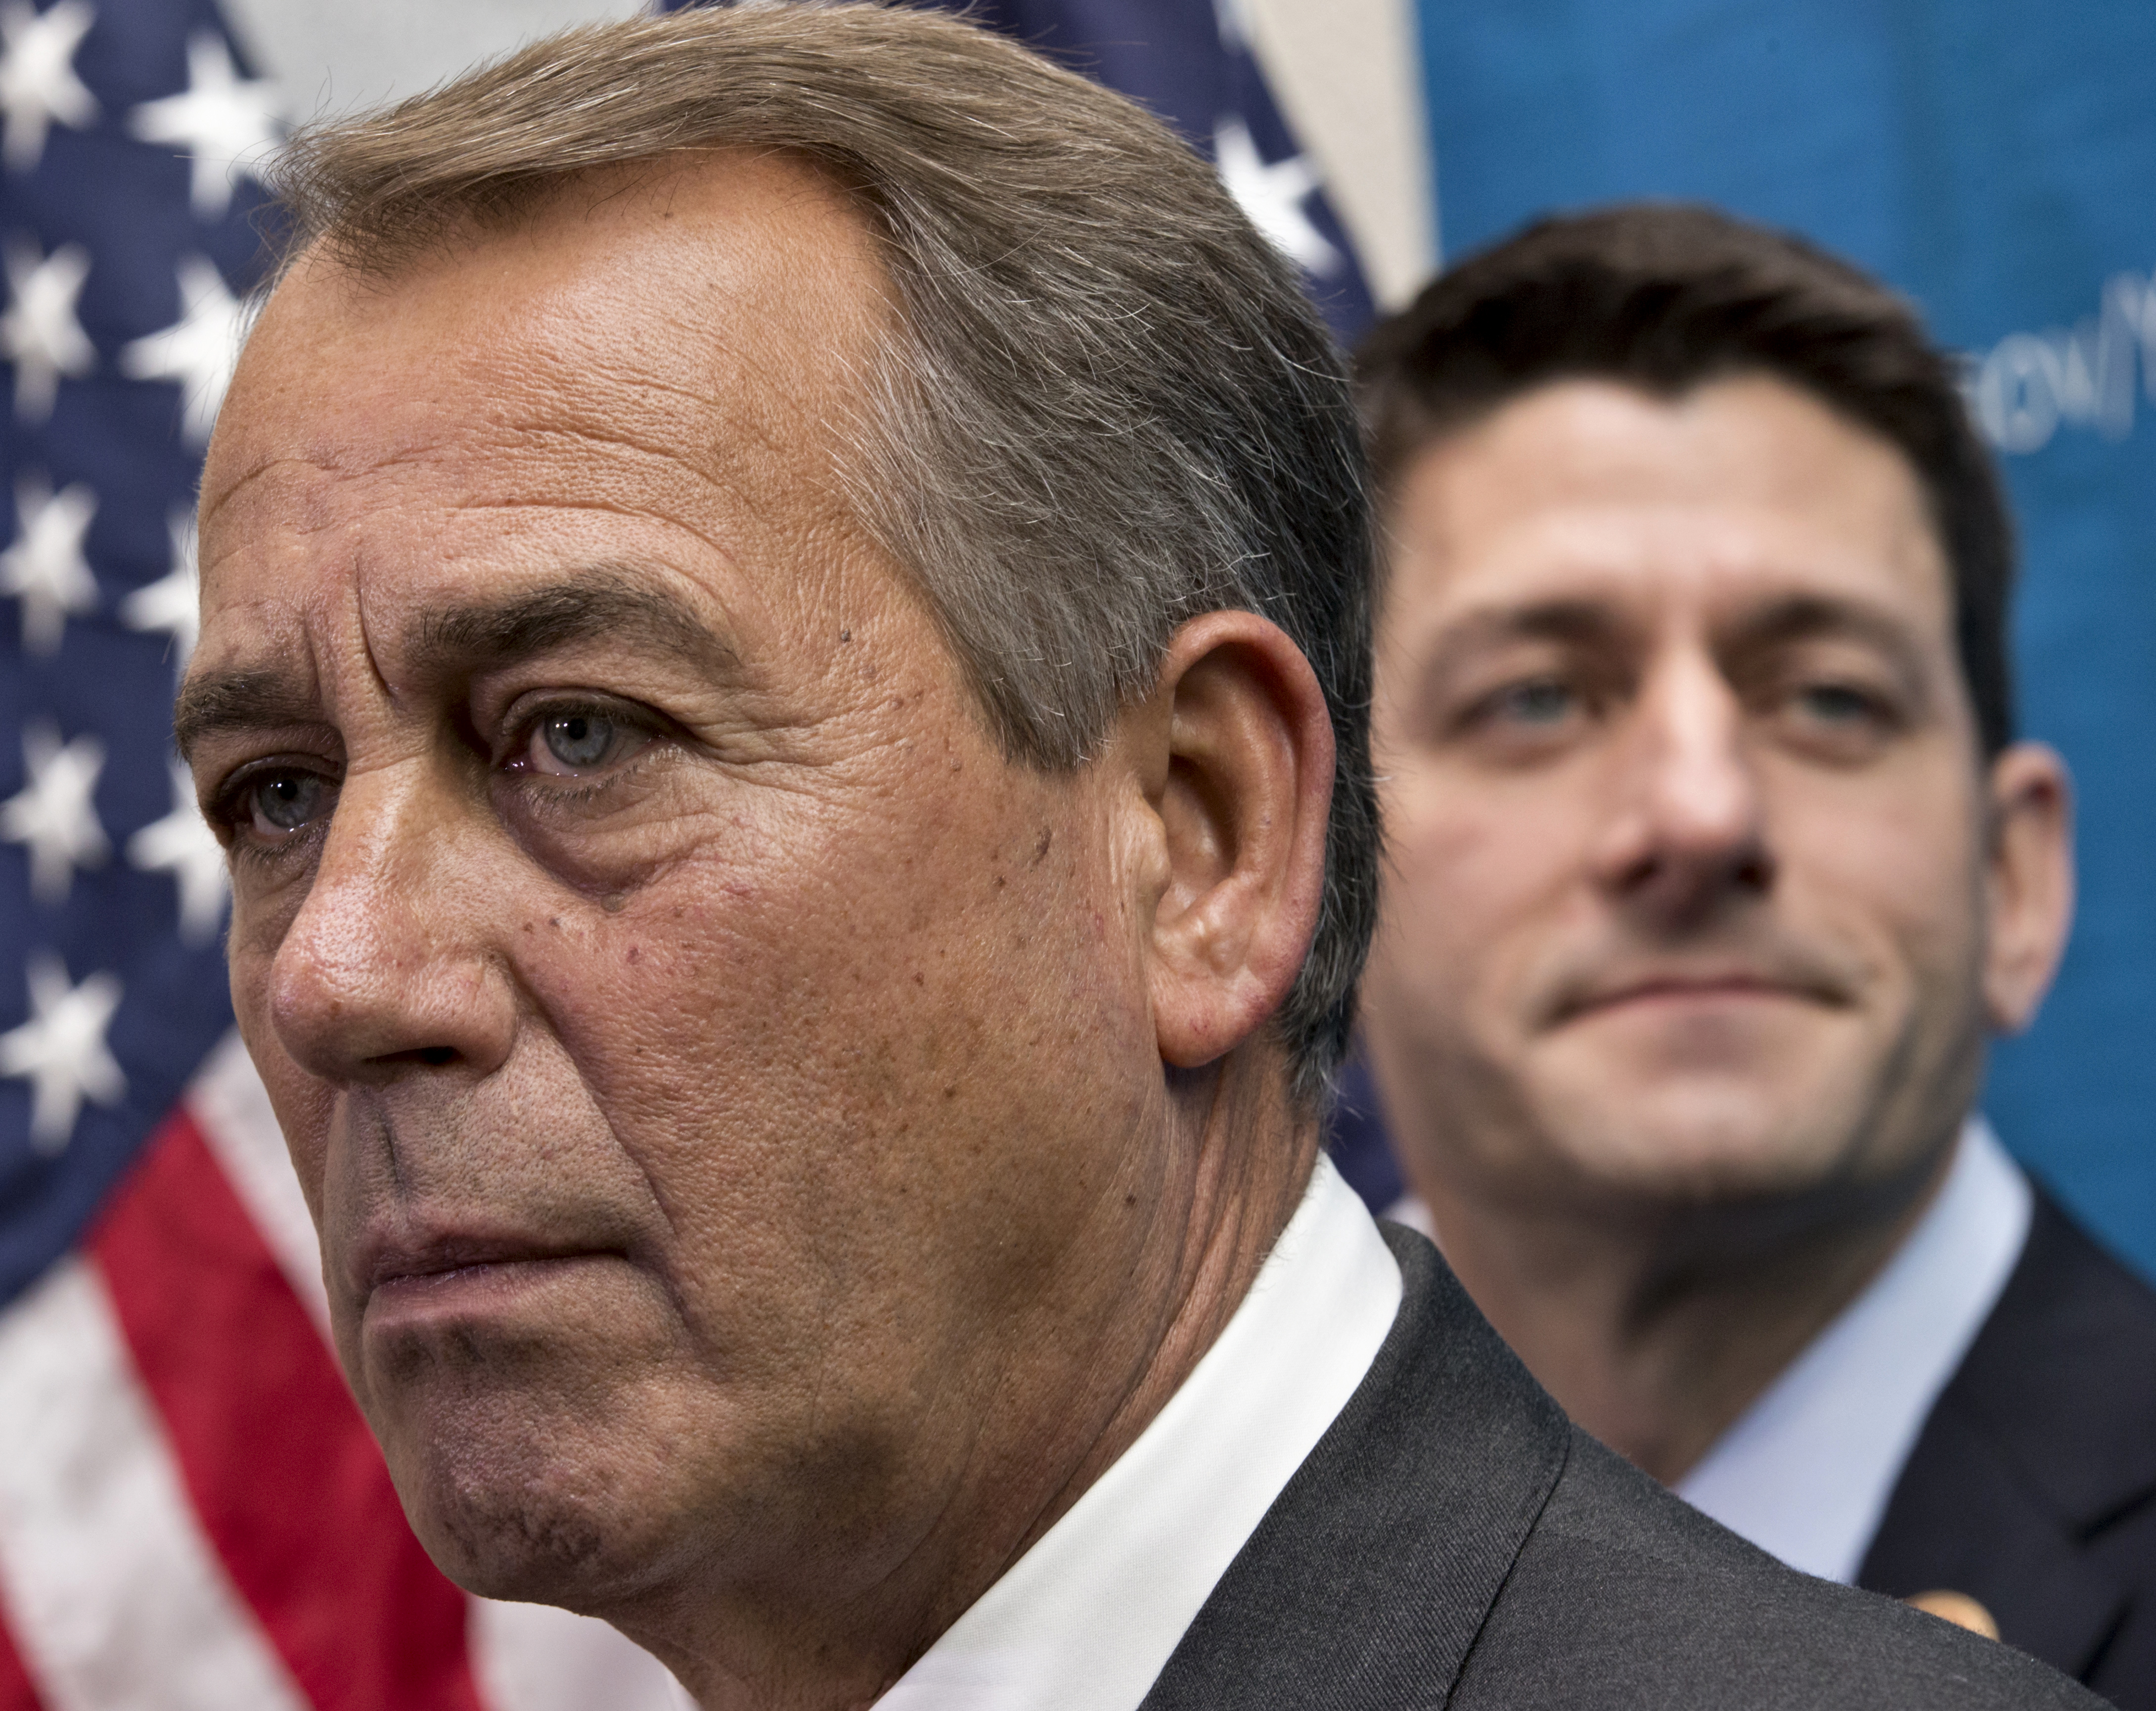 From left: House Speaker John Boehner of Ohio joined by House Budget Committee Chairman Rep. Paul Ryan takes reporters' questions, on Capitol Hill in Washington, D.C., on Dec. 11, 2013.